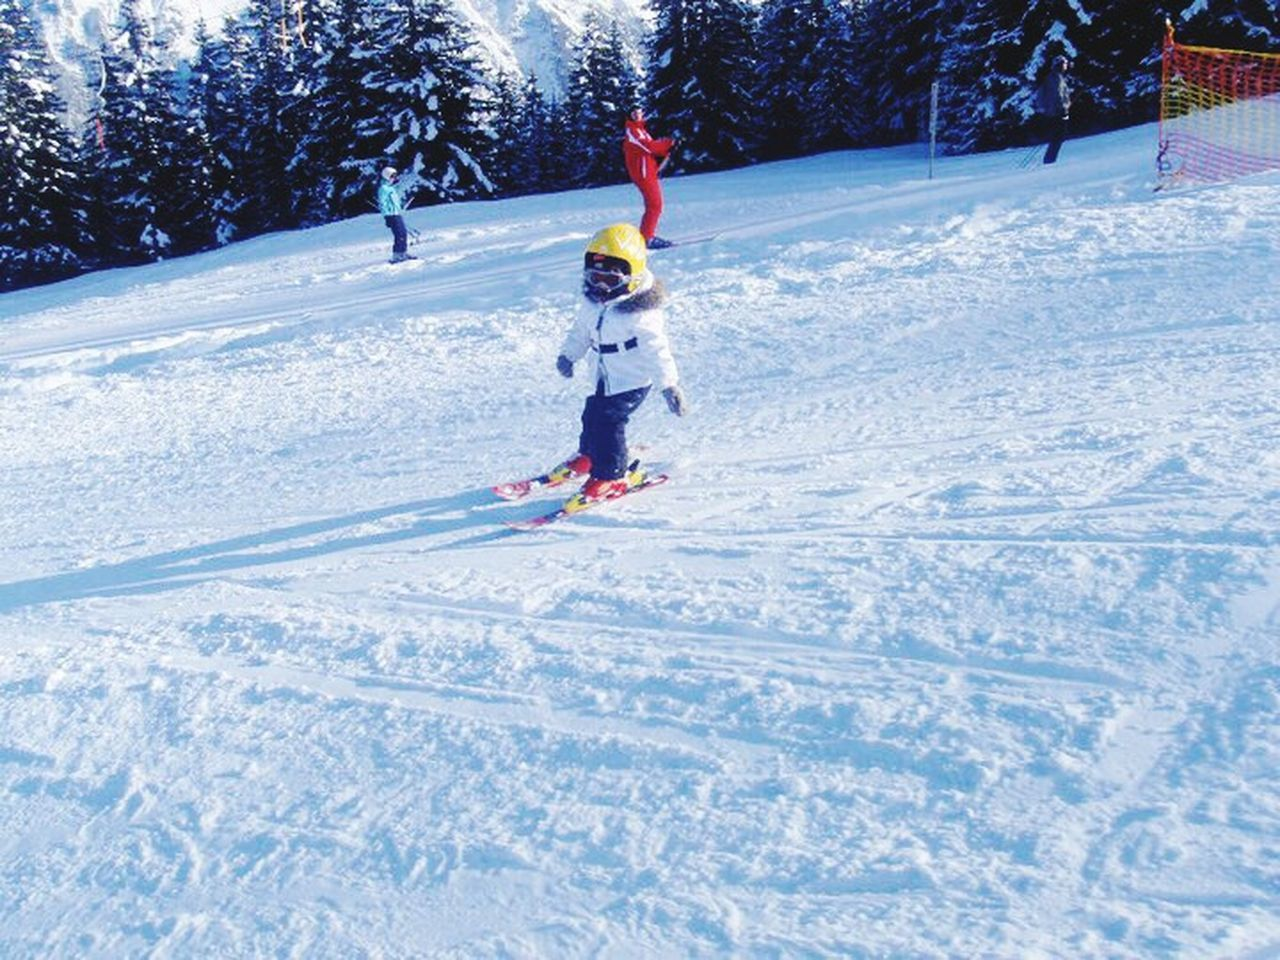 Ski There Years Old Girl Winter Snow Child Cold Temperature Children Only Childhood Fun Warm Clothing Full Length Leisure Activity Ski-wear Outdoors Playing One Boy Only People Winter Sport Ski Holiday Adventure Day